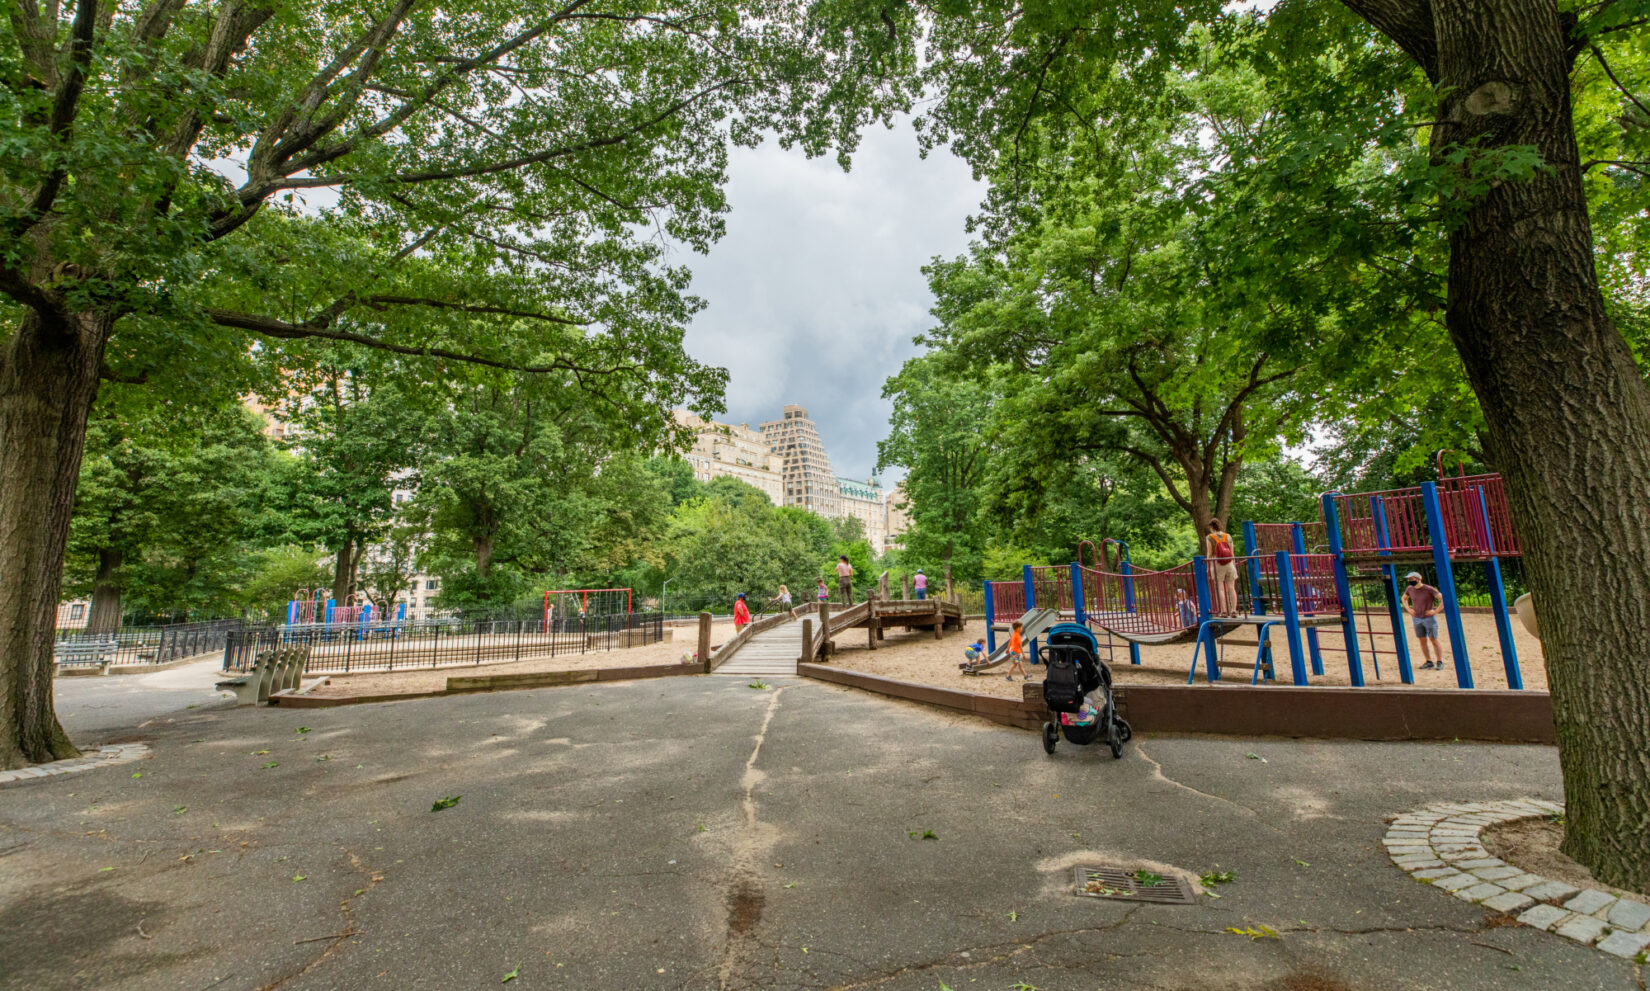 Looking down the Park path and across the rustic footbridge of the playground in summer.